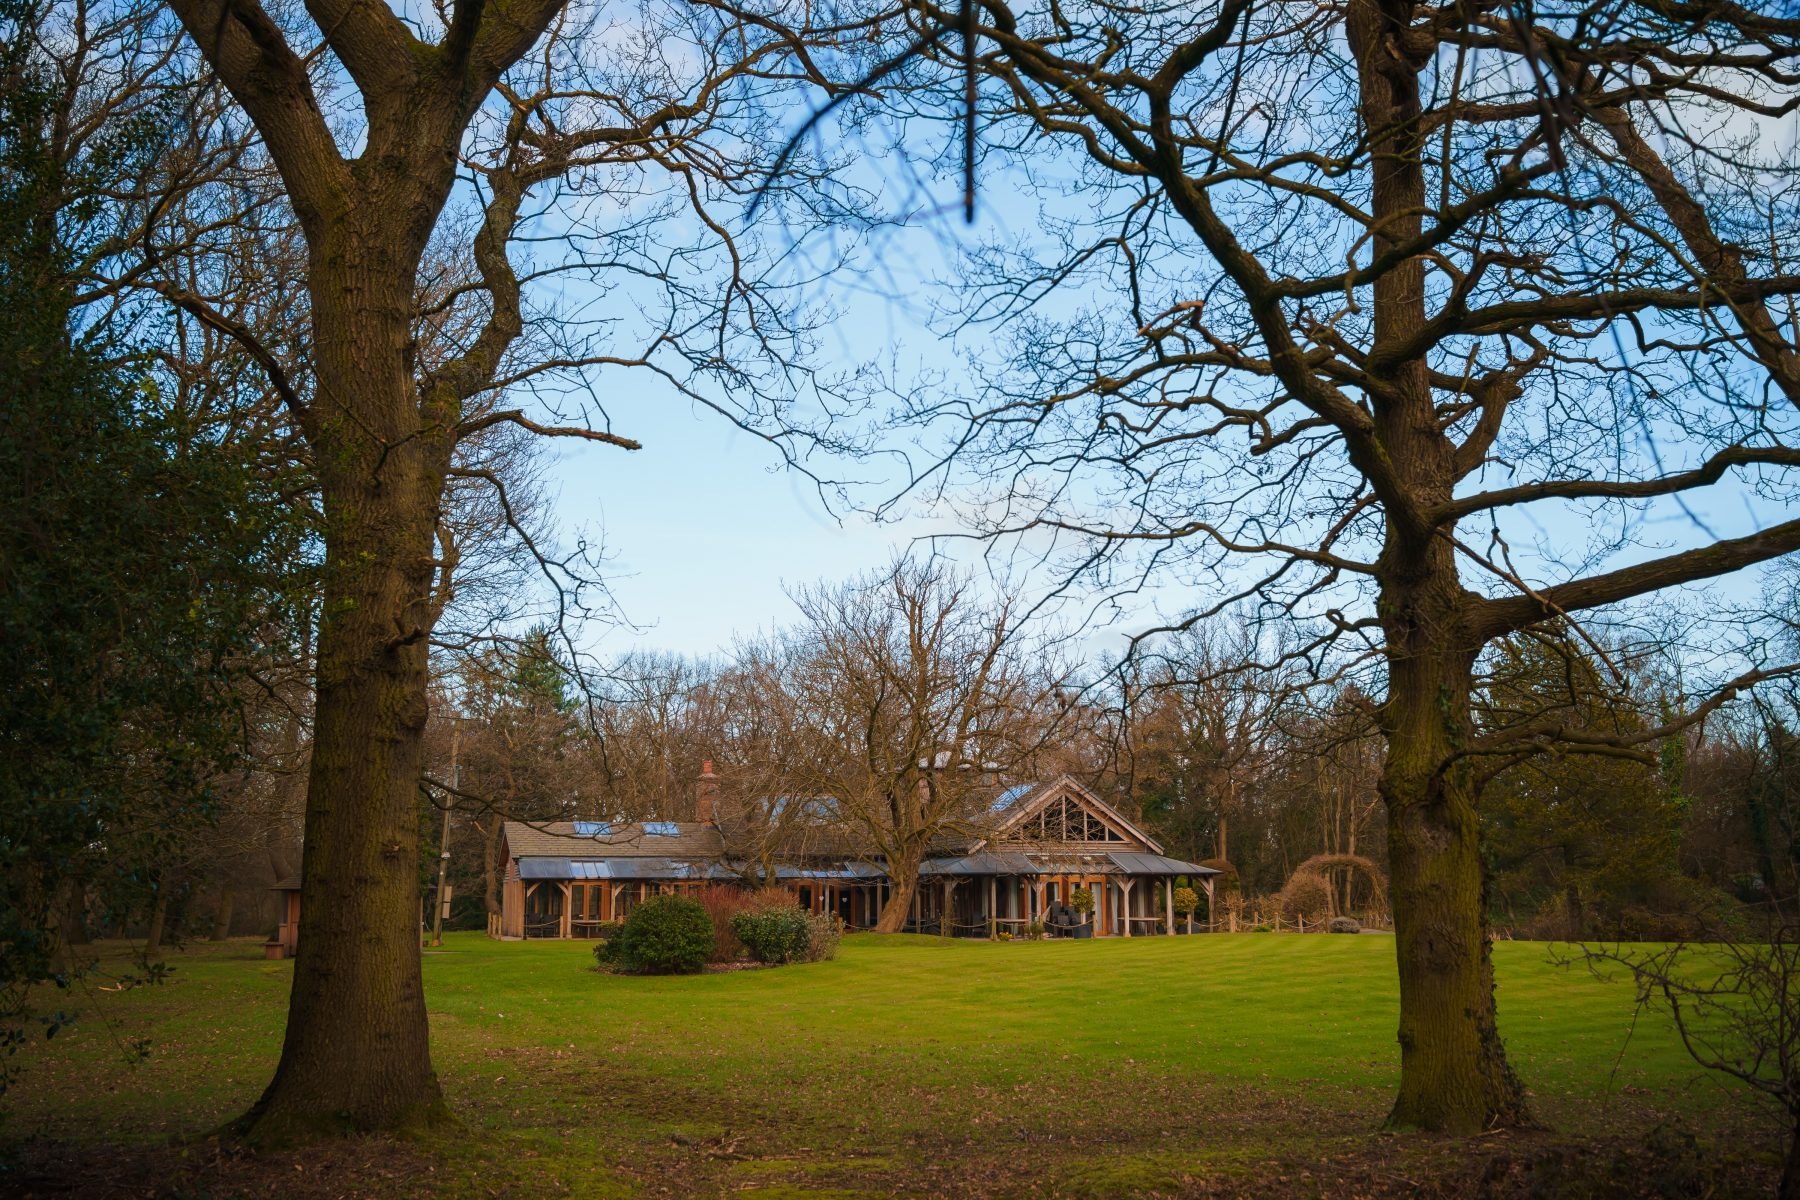 Views of a Knutsford Wedding Venue - The Oak Tree of Peover